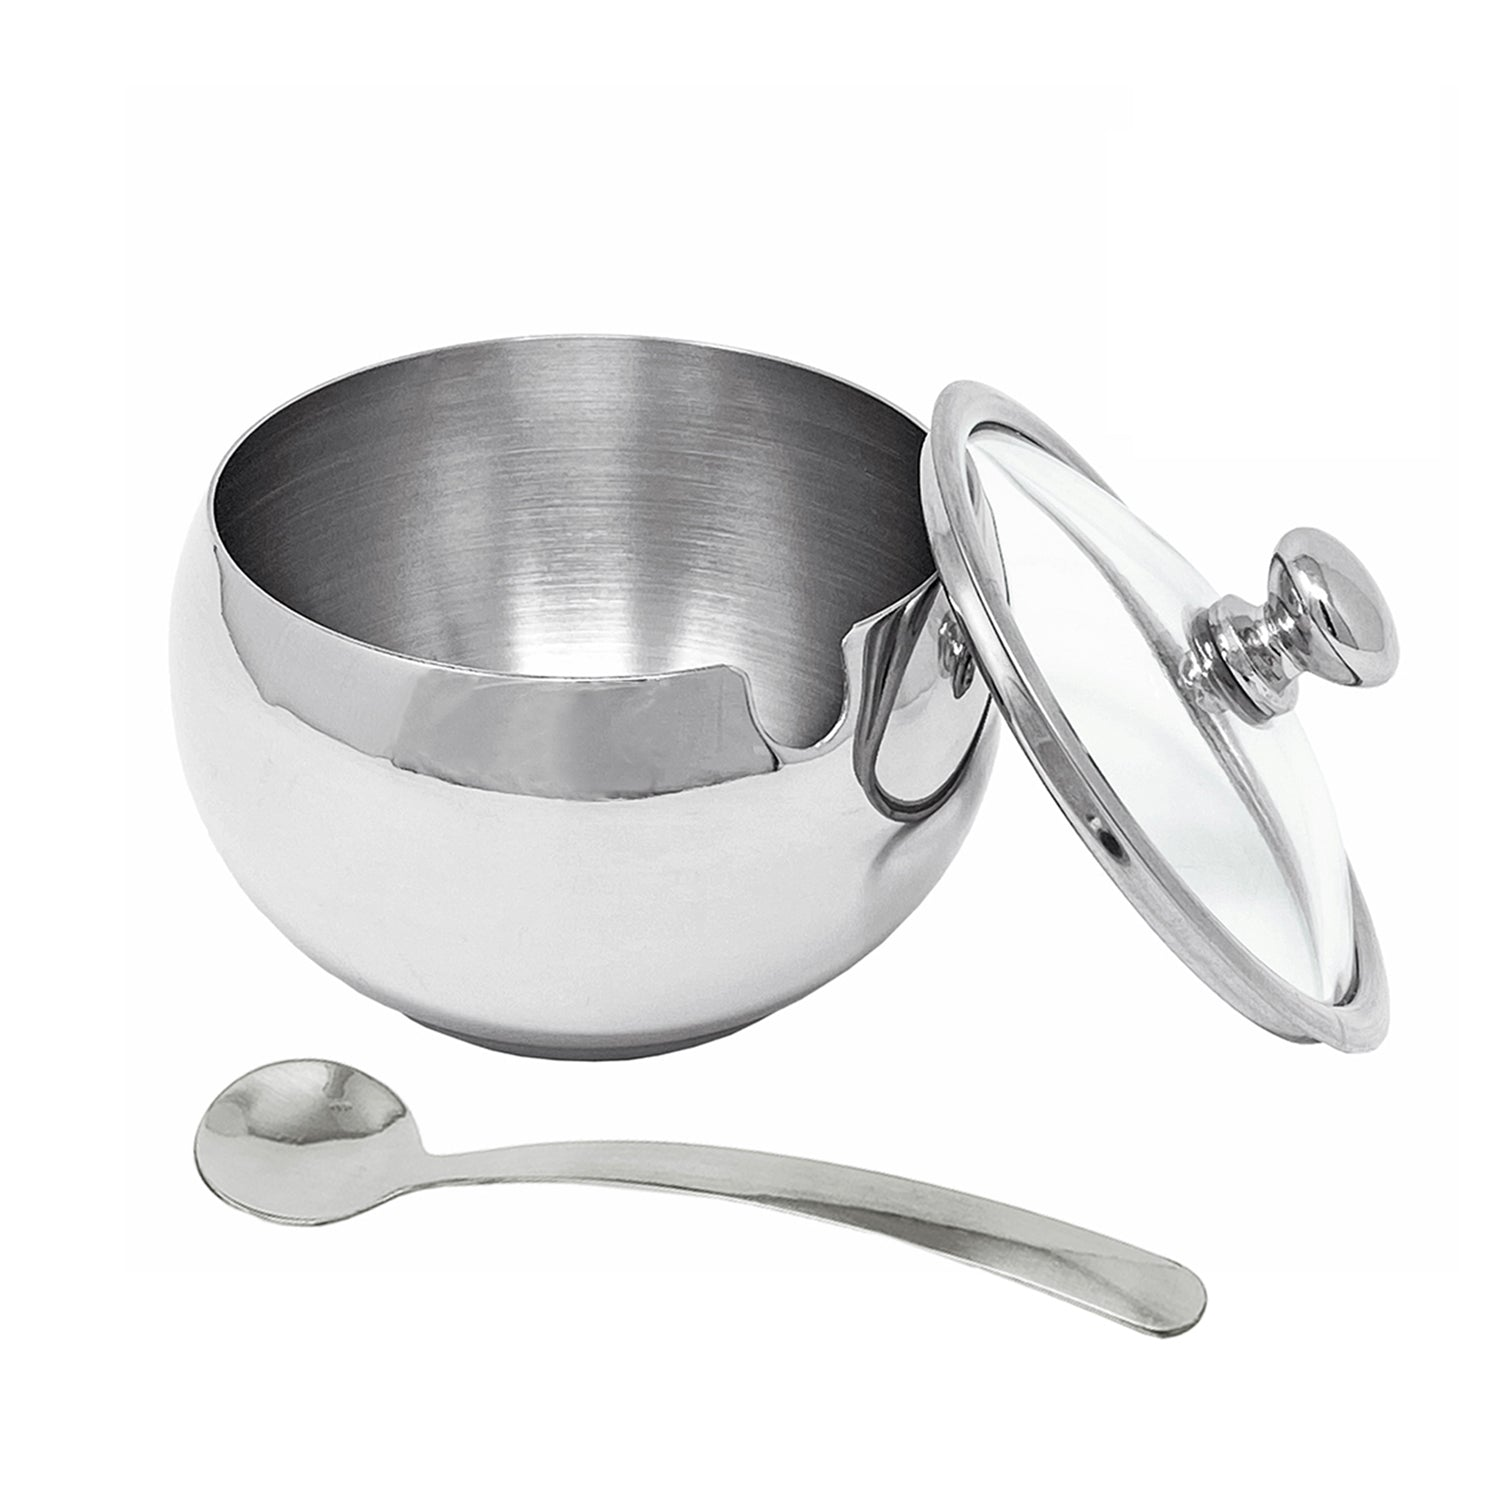 HYTX 12 Oz Stainless Steel Sugar Bowl with Glass Lid and Spoon for Home and Kitchen (Drum Shape)